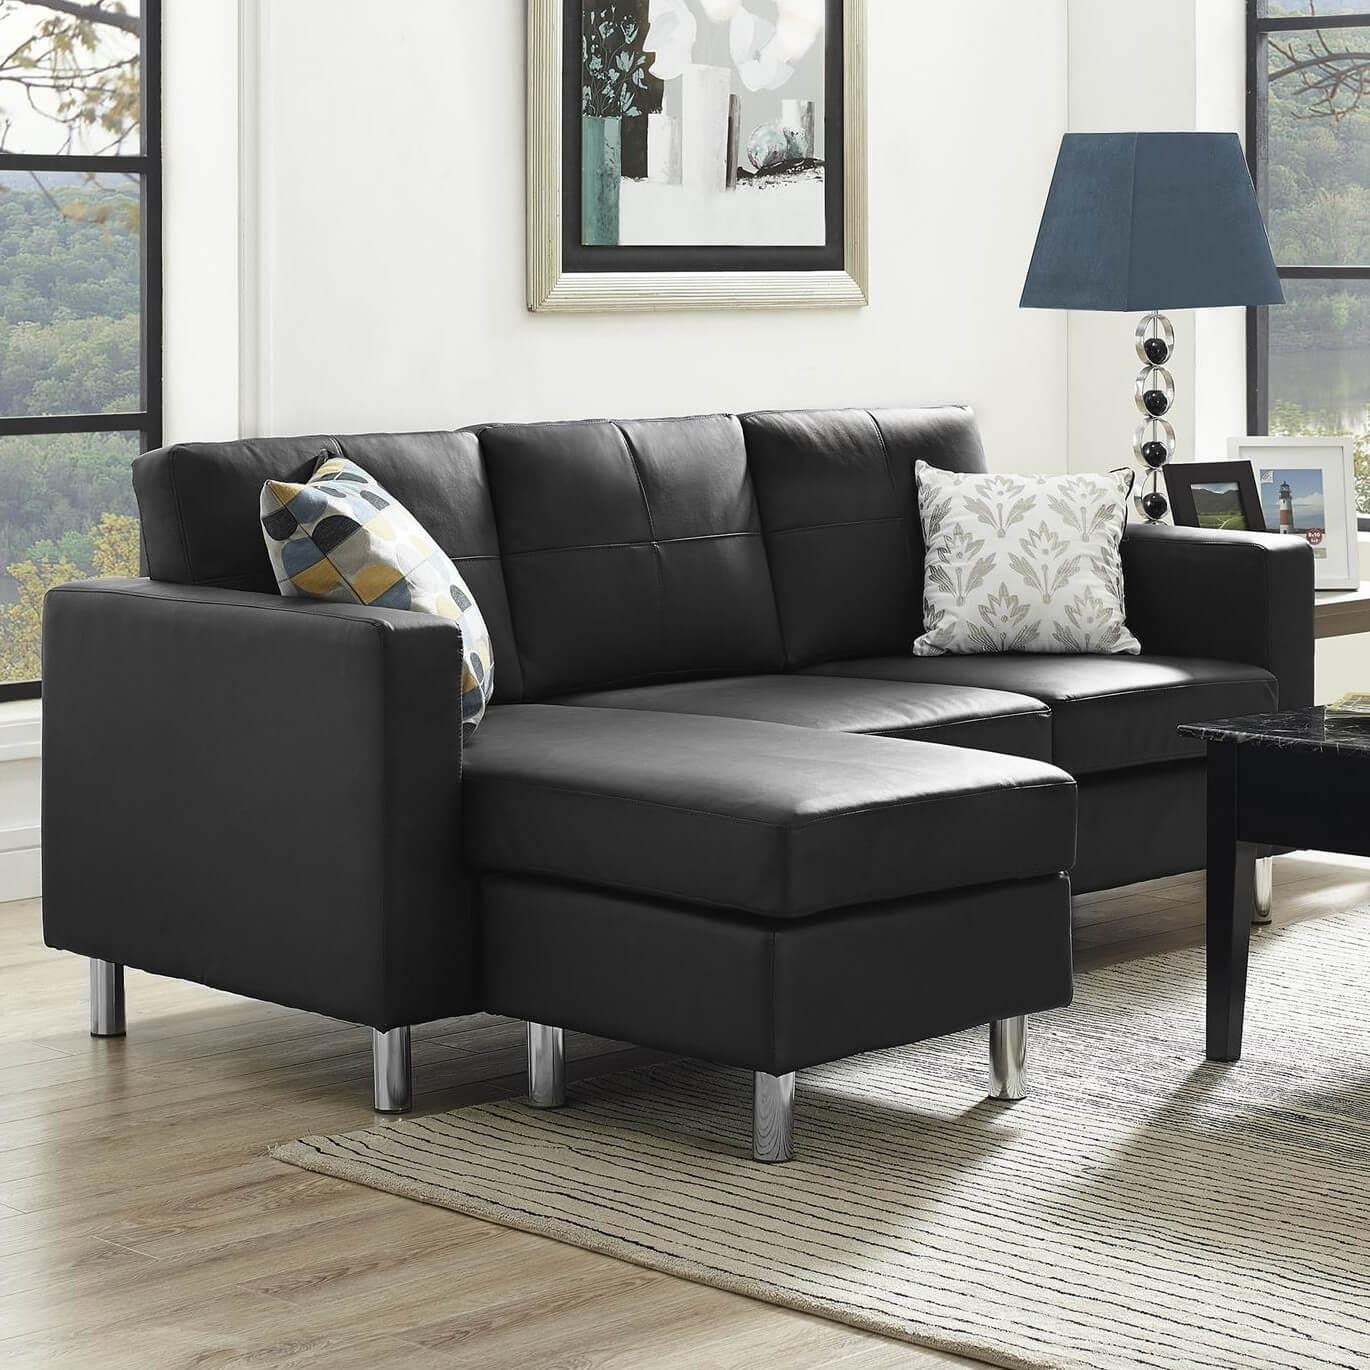 13 Sectional Sofas Under $500 (Several Styles) Within Modern Sectional Sofas For Small Spaces (Image 3 of 20)